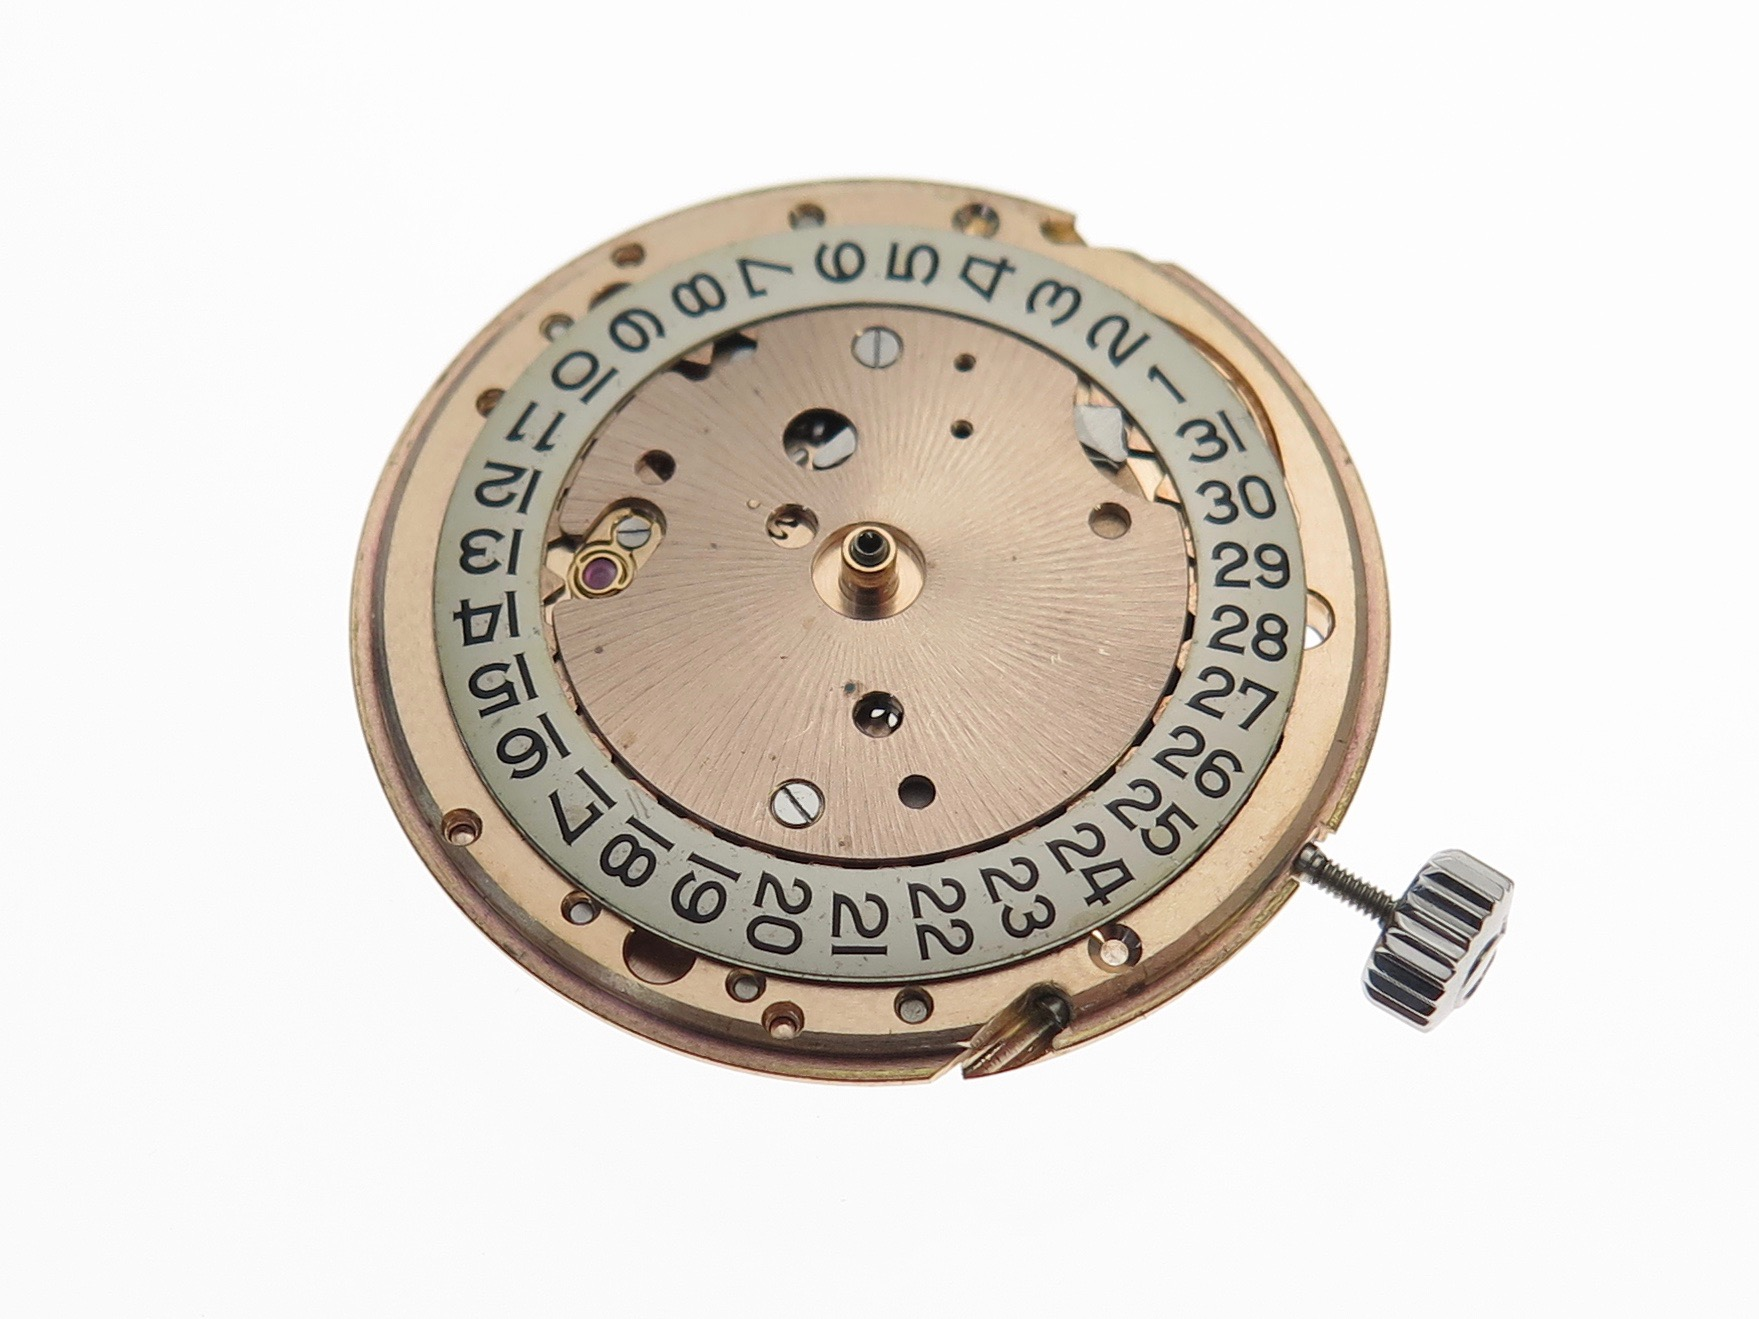 Dial side of movement